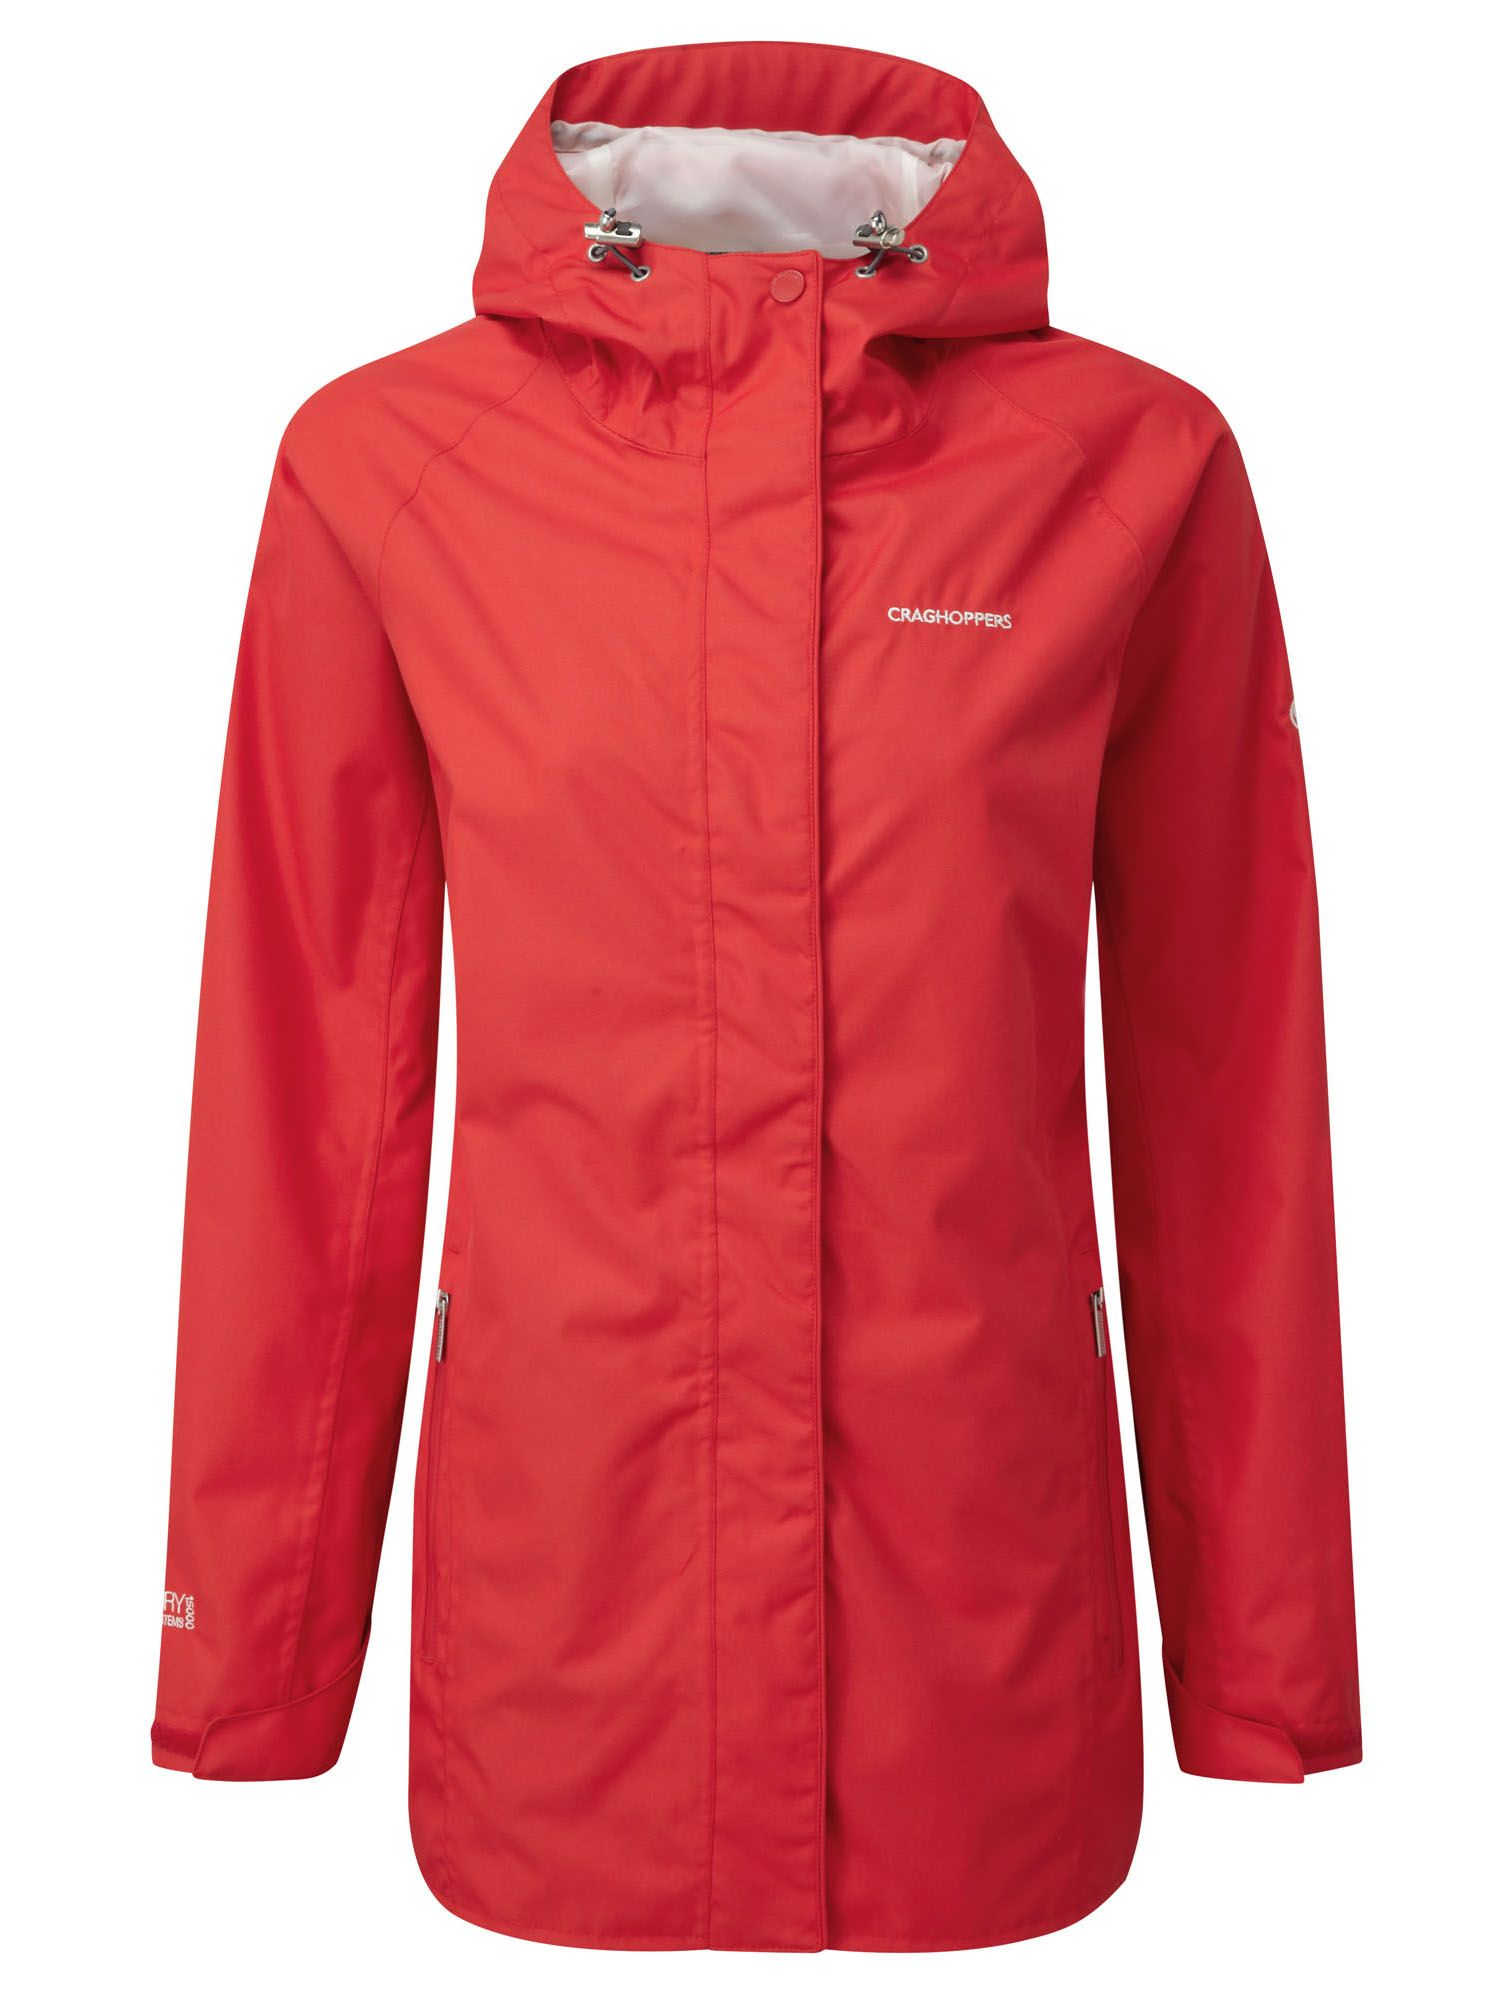 Craghoppers Madigan Classic Waterproof Jacket, Red